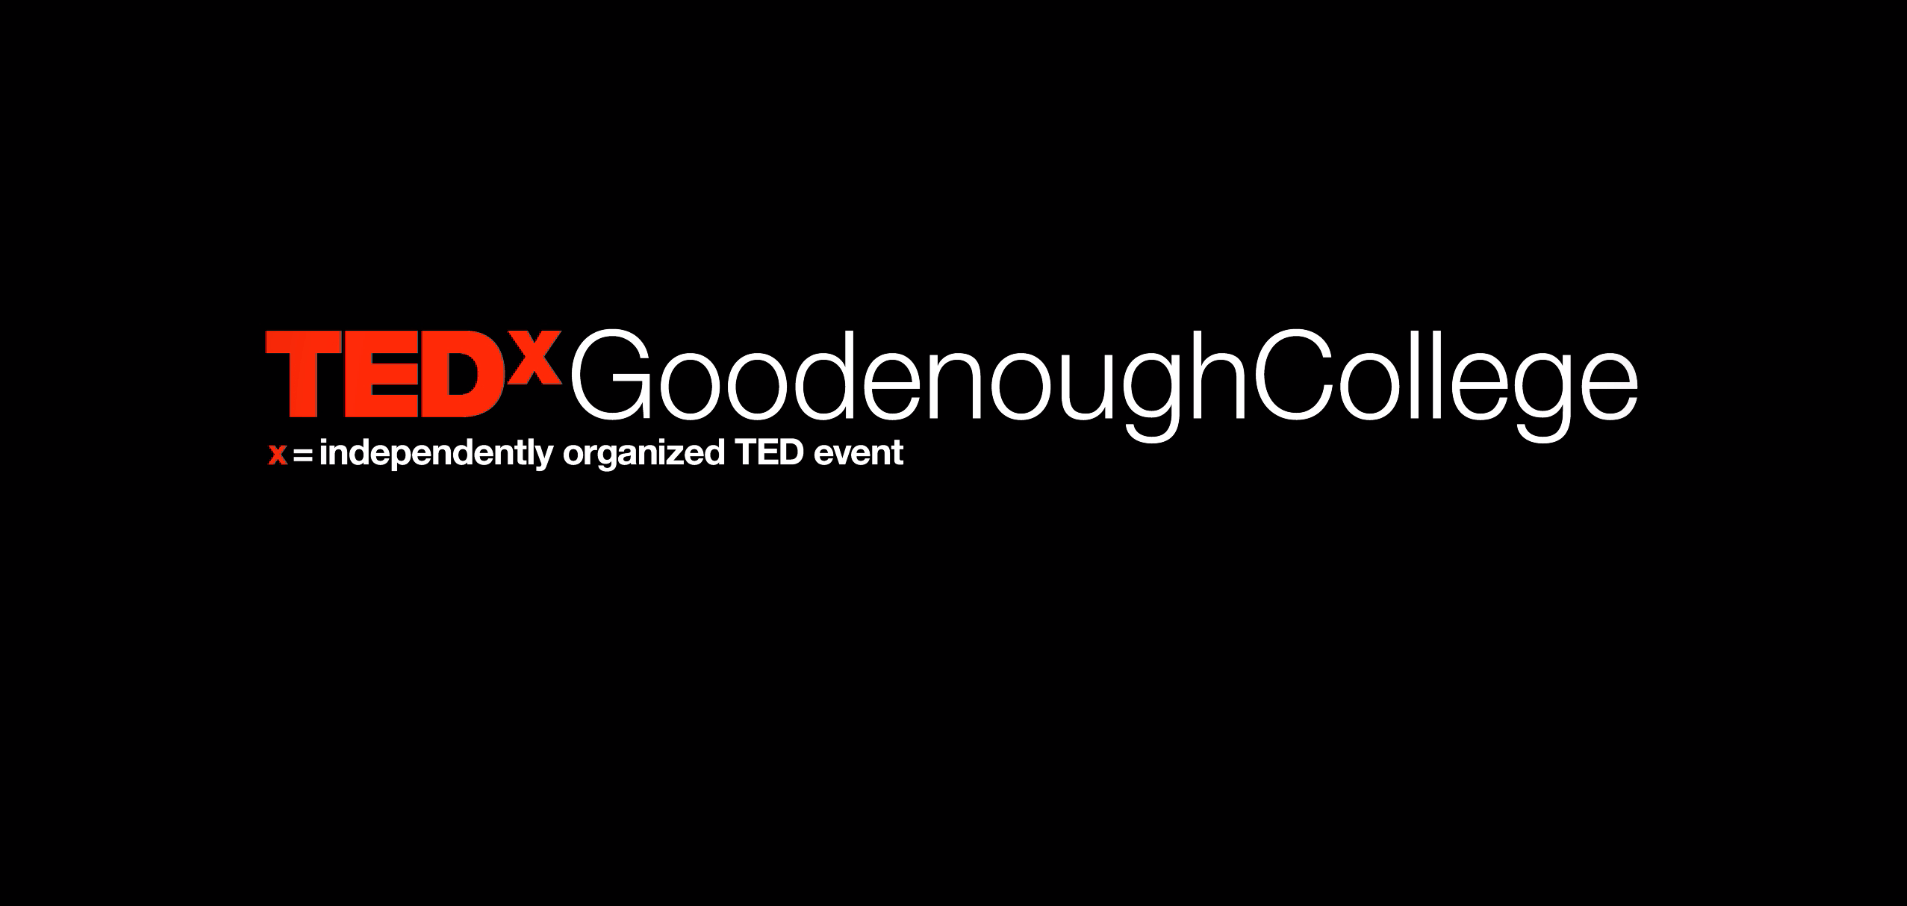 Tedx Goodenough College - 2019